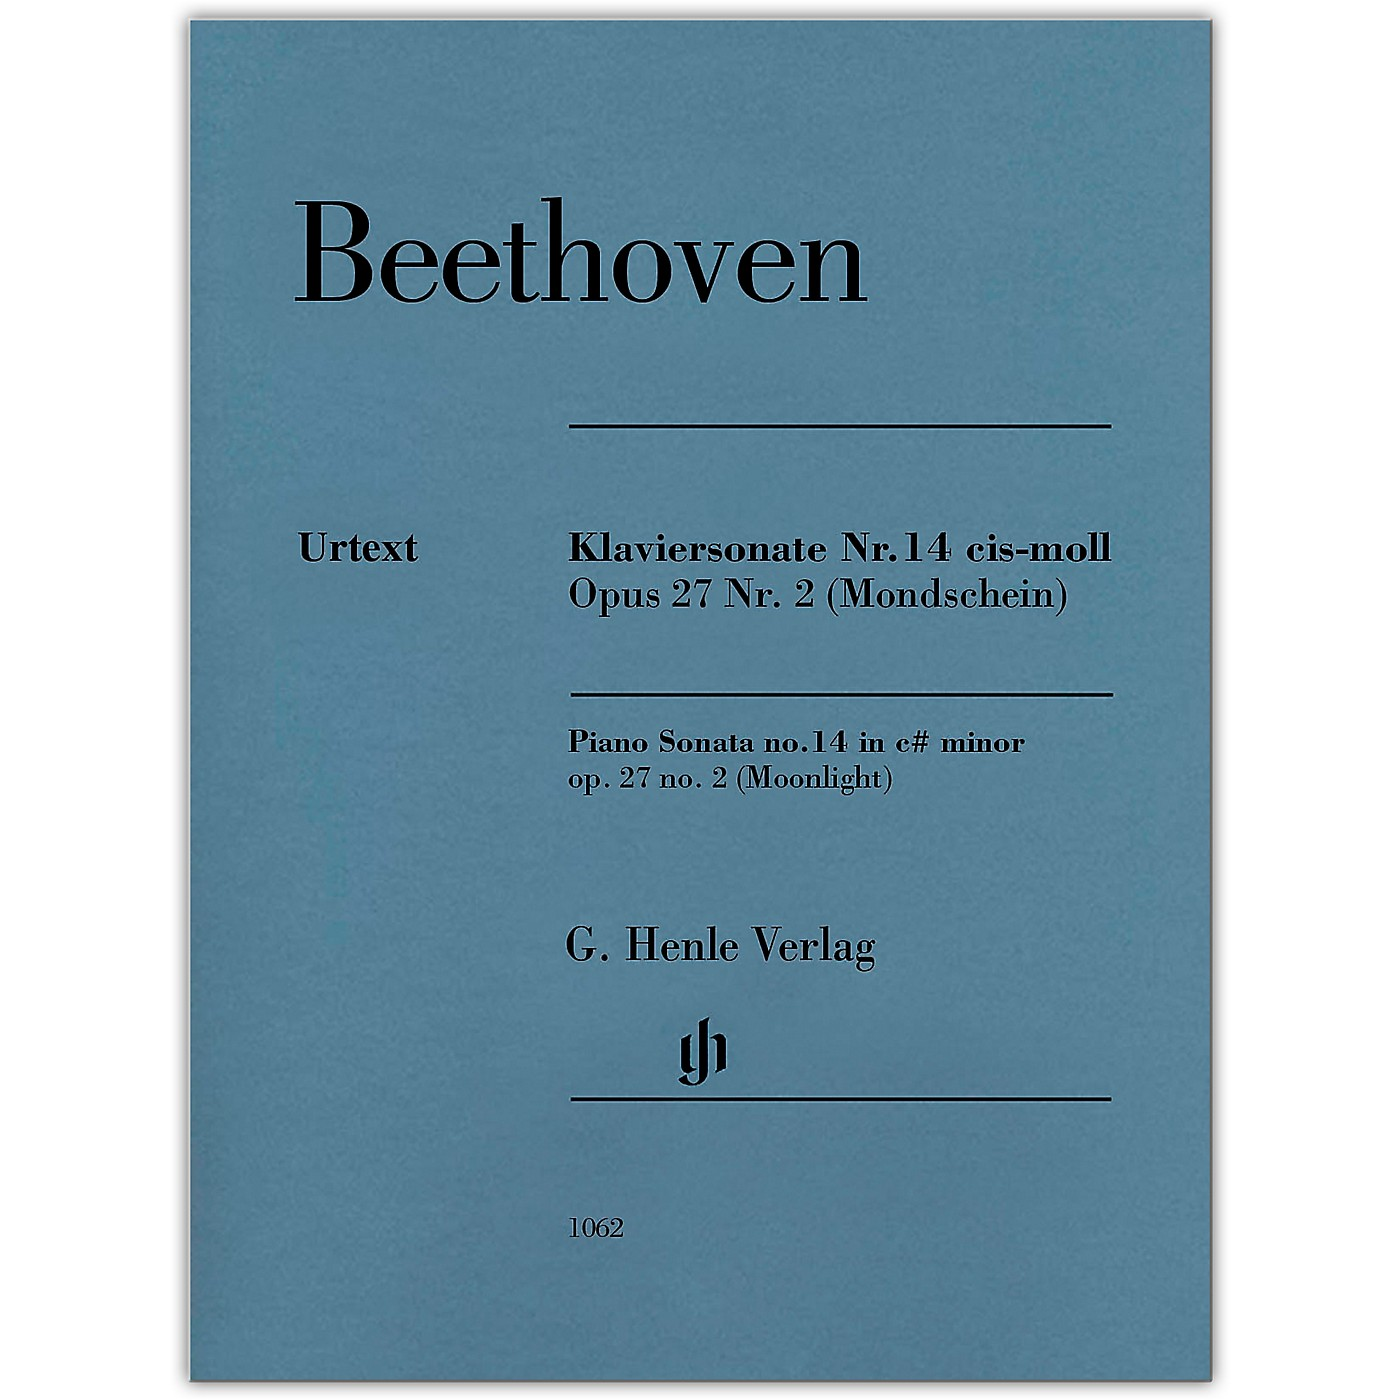 G. Henle Verlag Piano Sonata No 14 in C-sharp min Op 27 No 2 (Moonlight) Henle Music by Beethoven Edited by Gertsch thumbnail